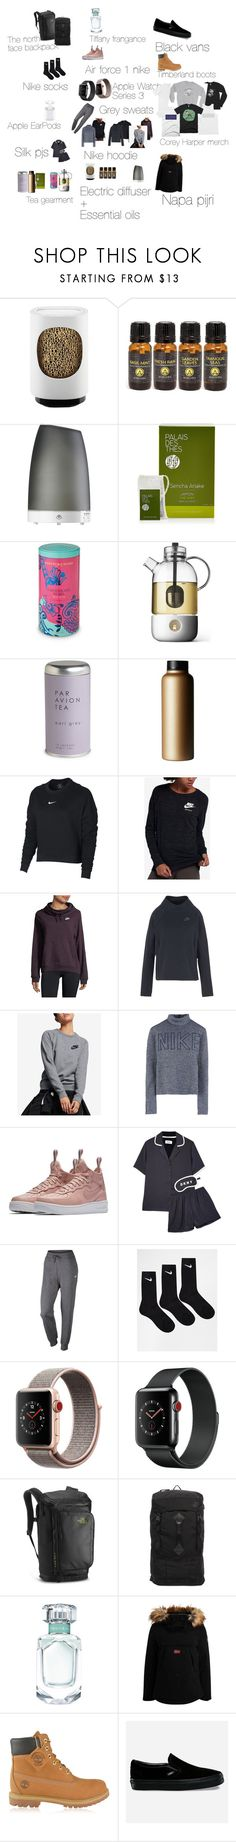 """""""2018 wishlist"""" by misandovalgonza on Polyvore featuring Diptyque, Serene House, Palais des Thés, Fortnum & Mason, Par Avion Tea, T2, NIKE, DKNY, Apple and The North Face"""